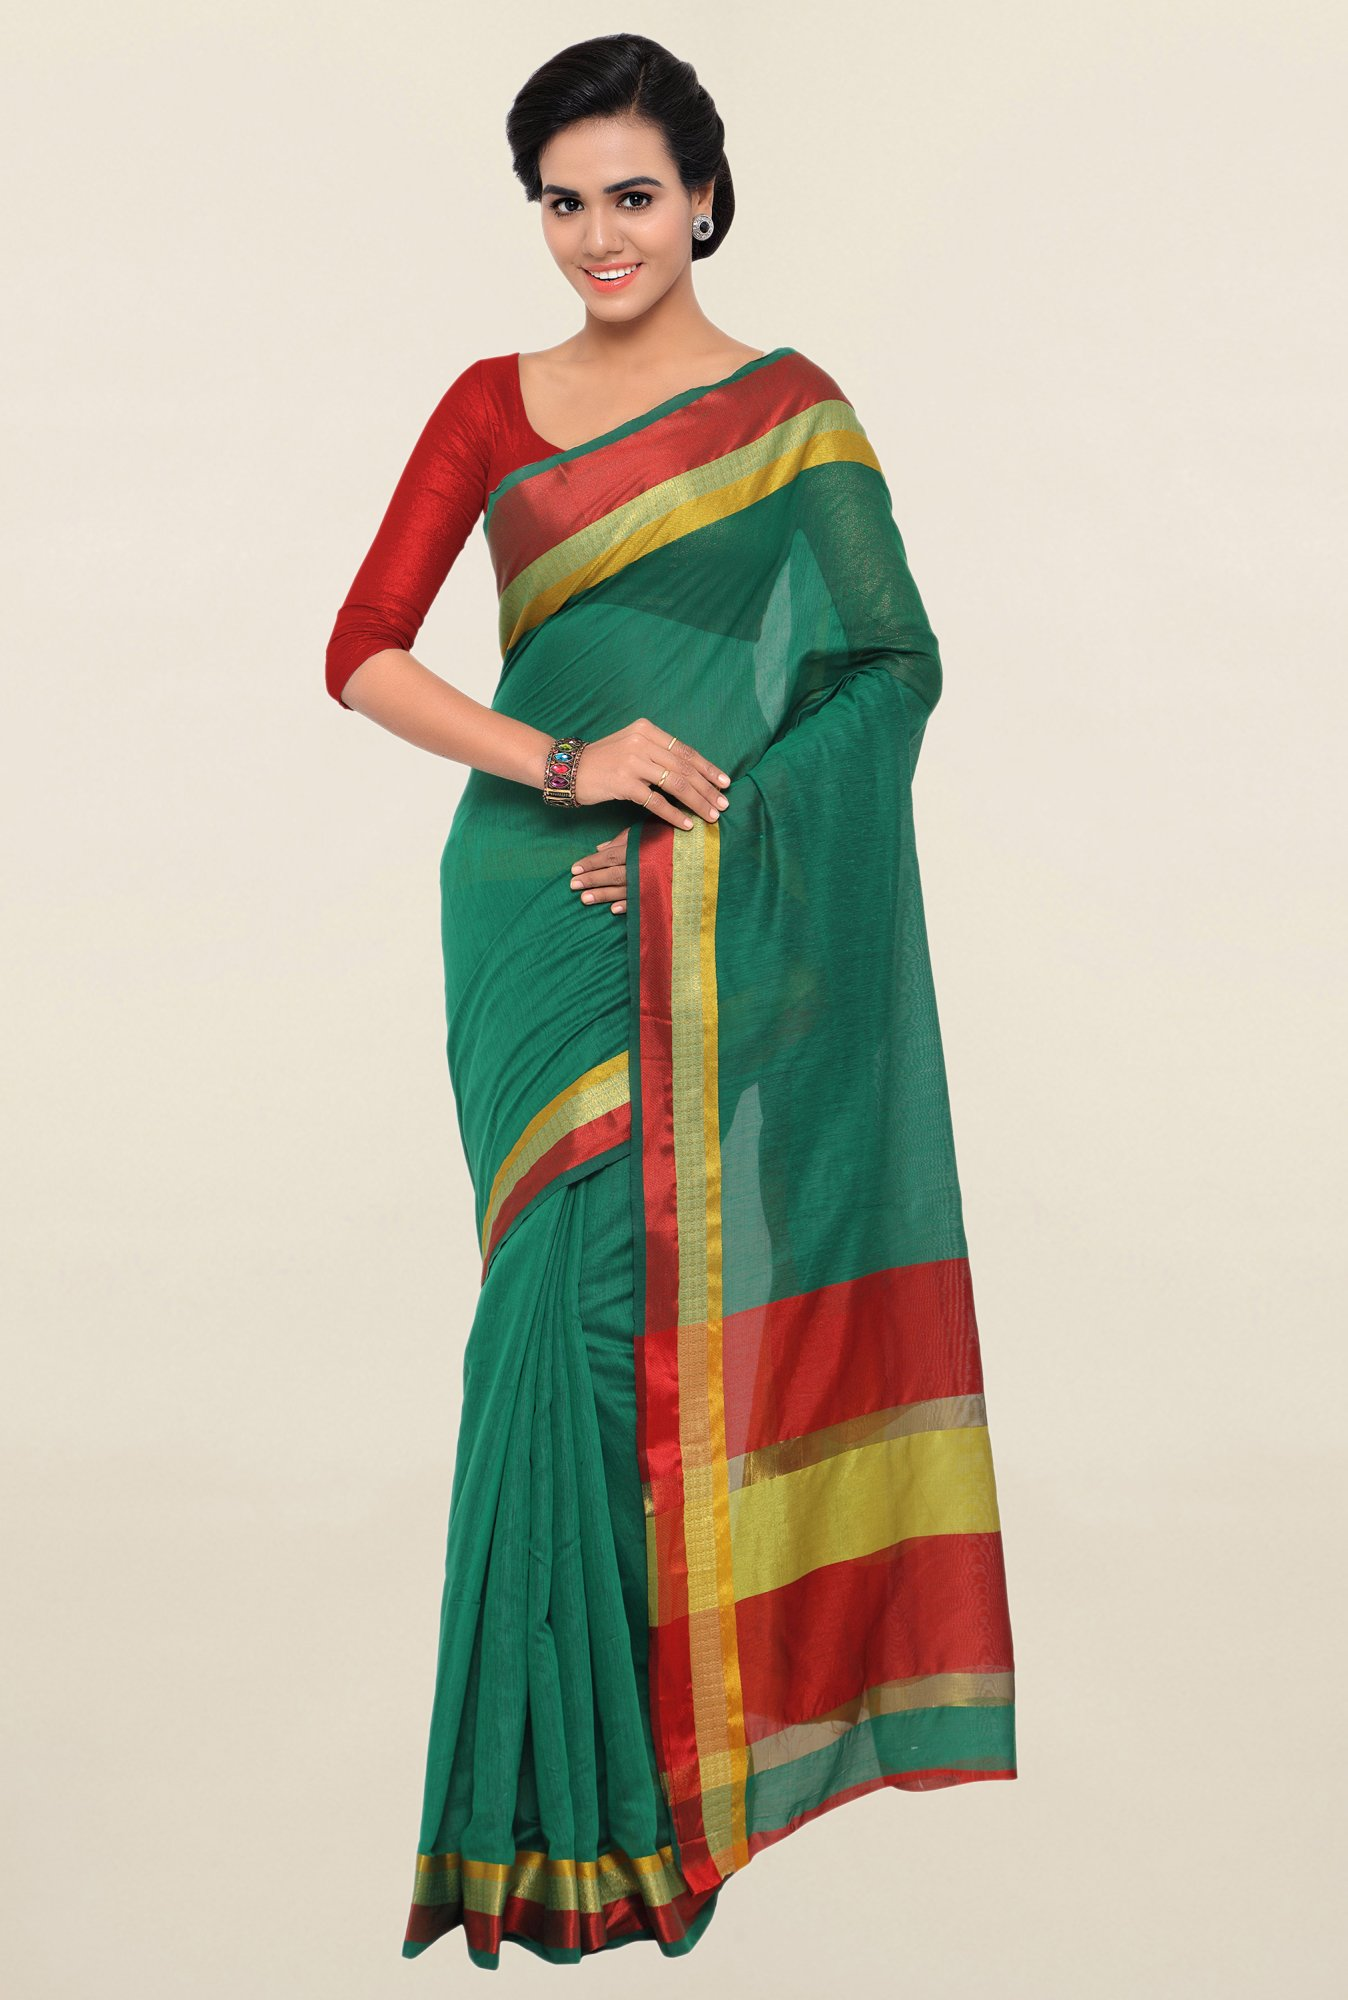 Triveni Green Textured Blended Cotton Saree